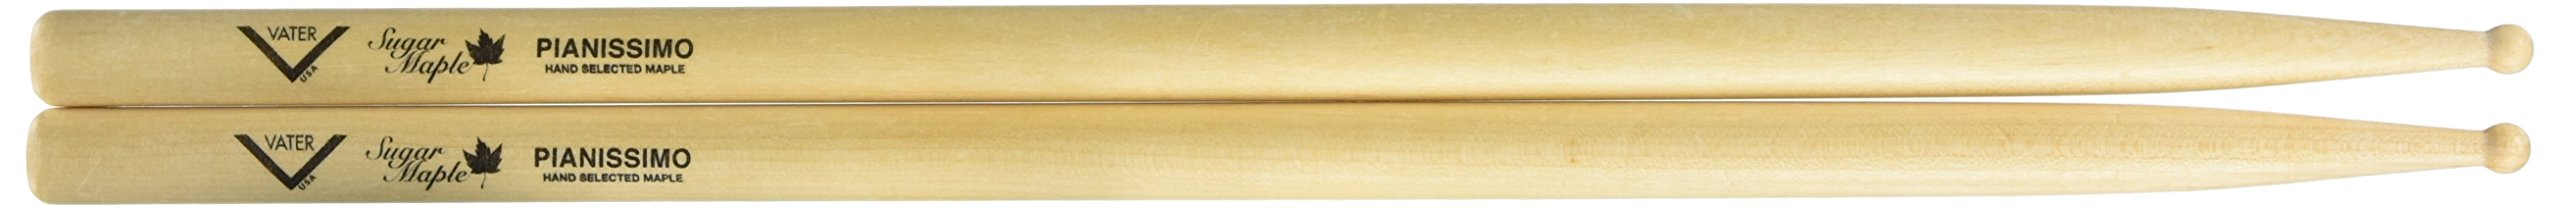 Vater VSMPIANW Sugar Maple Pianissimo Wood Tip Drum Sticks, Pair